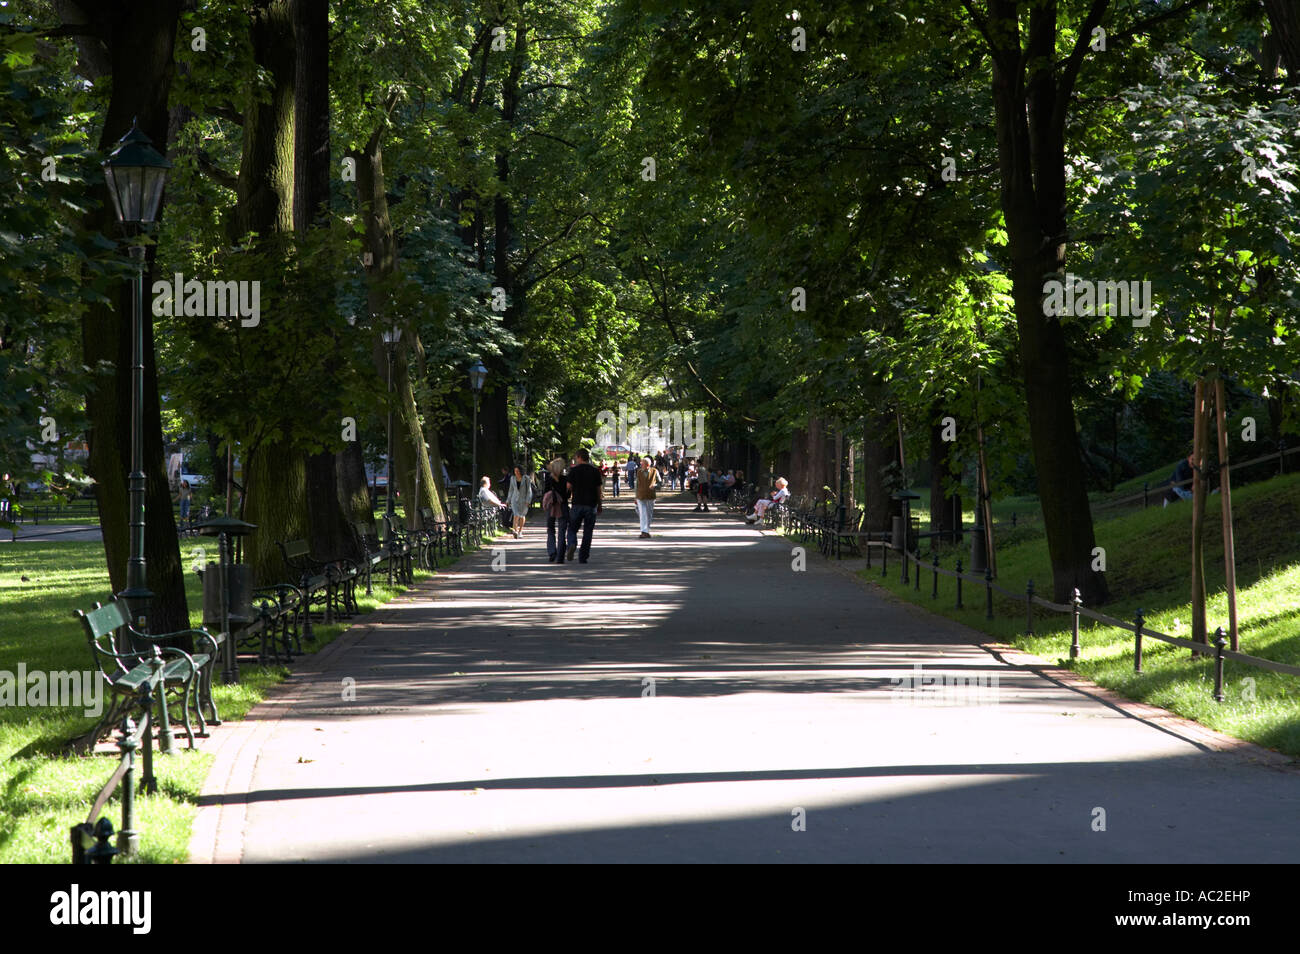 footpath through the planty public parks and gardens with people walking on them in Krakow - Stock Image